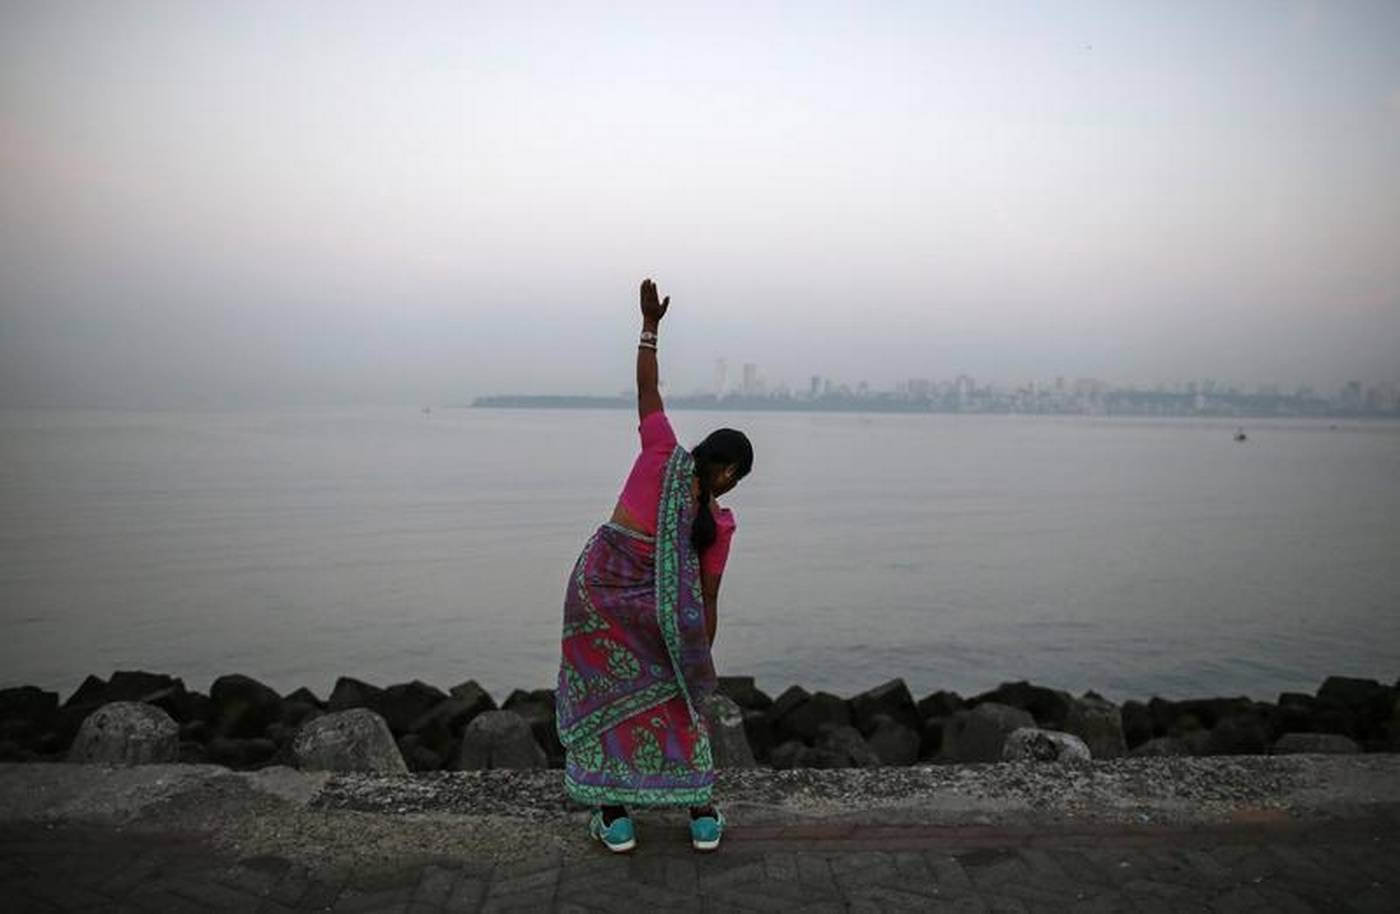 Indian women reclaim public spaces, defying male critics